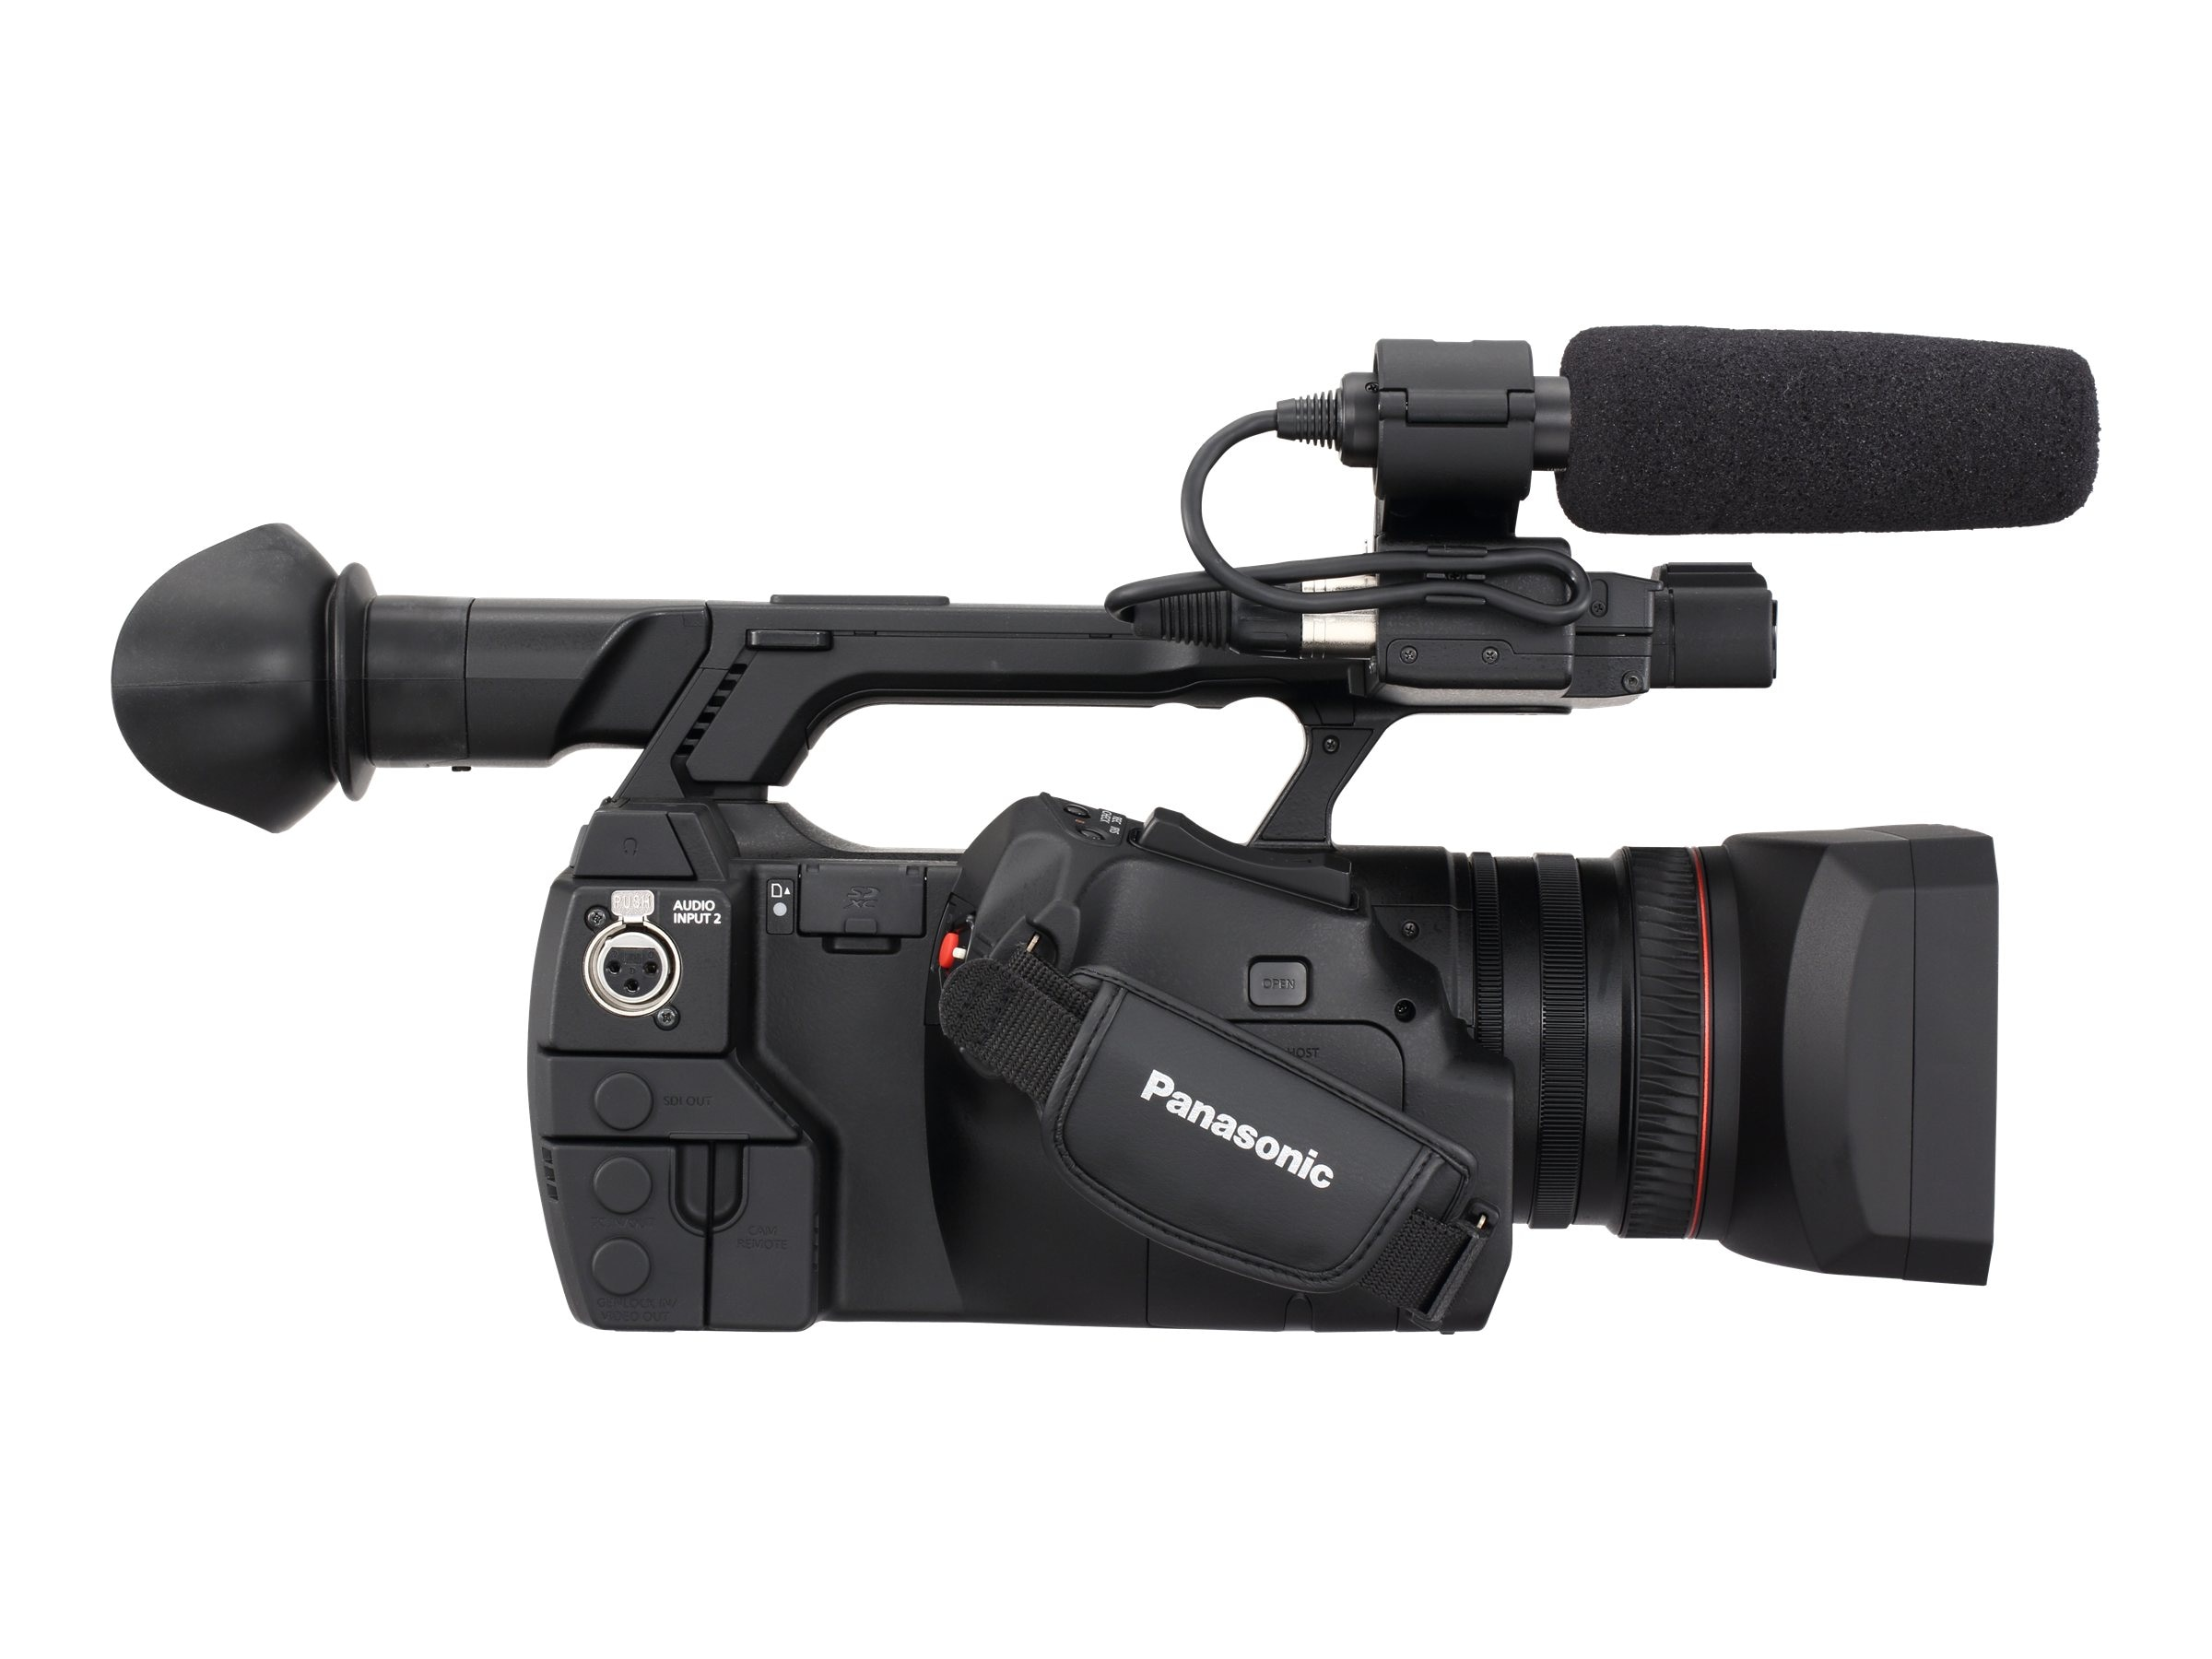 Panasonic Handheld P2 HD Camcorder with AVC-ULTRA Recording, AJ-PX270PJ